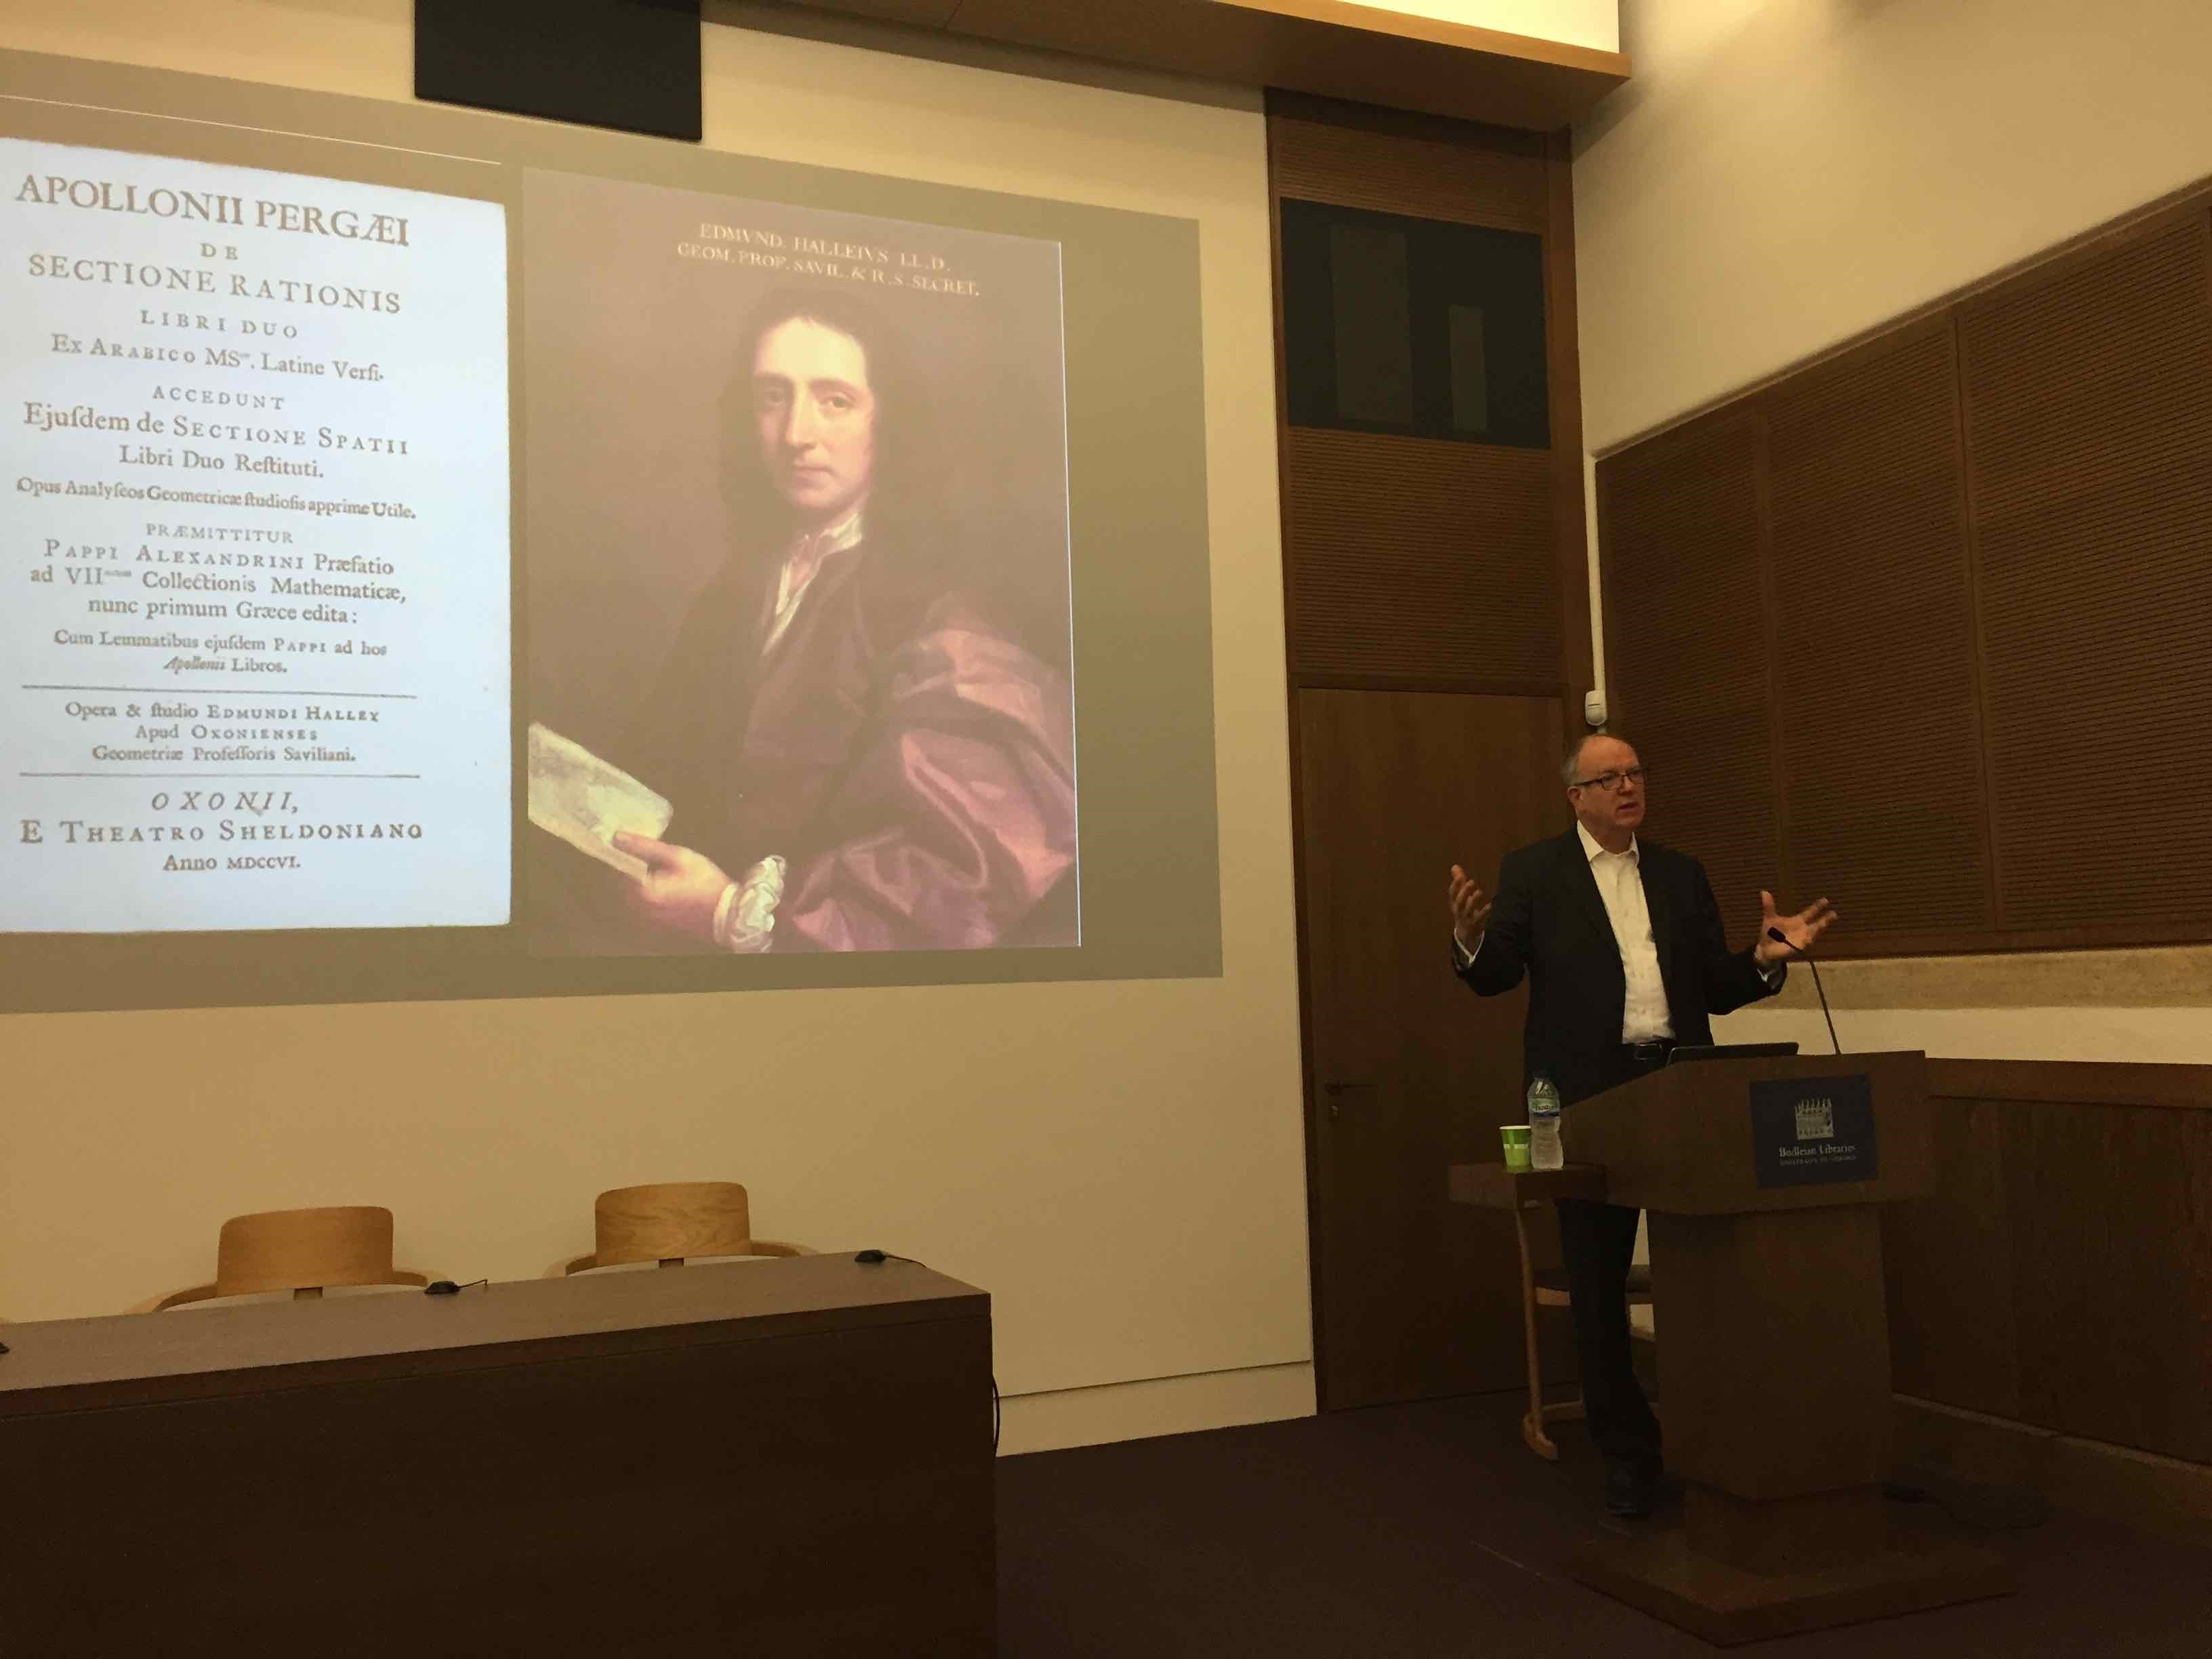 Richard Ovenden's lecture in the Weston Library Lecture Theatre